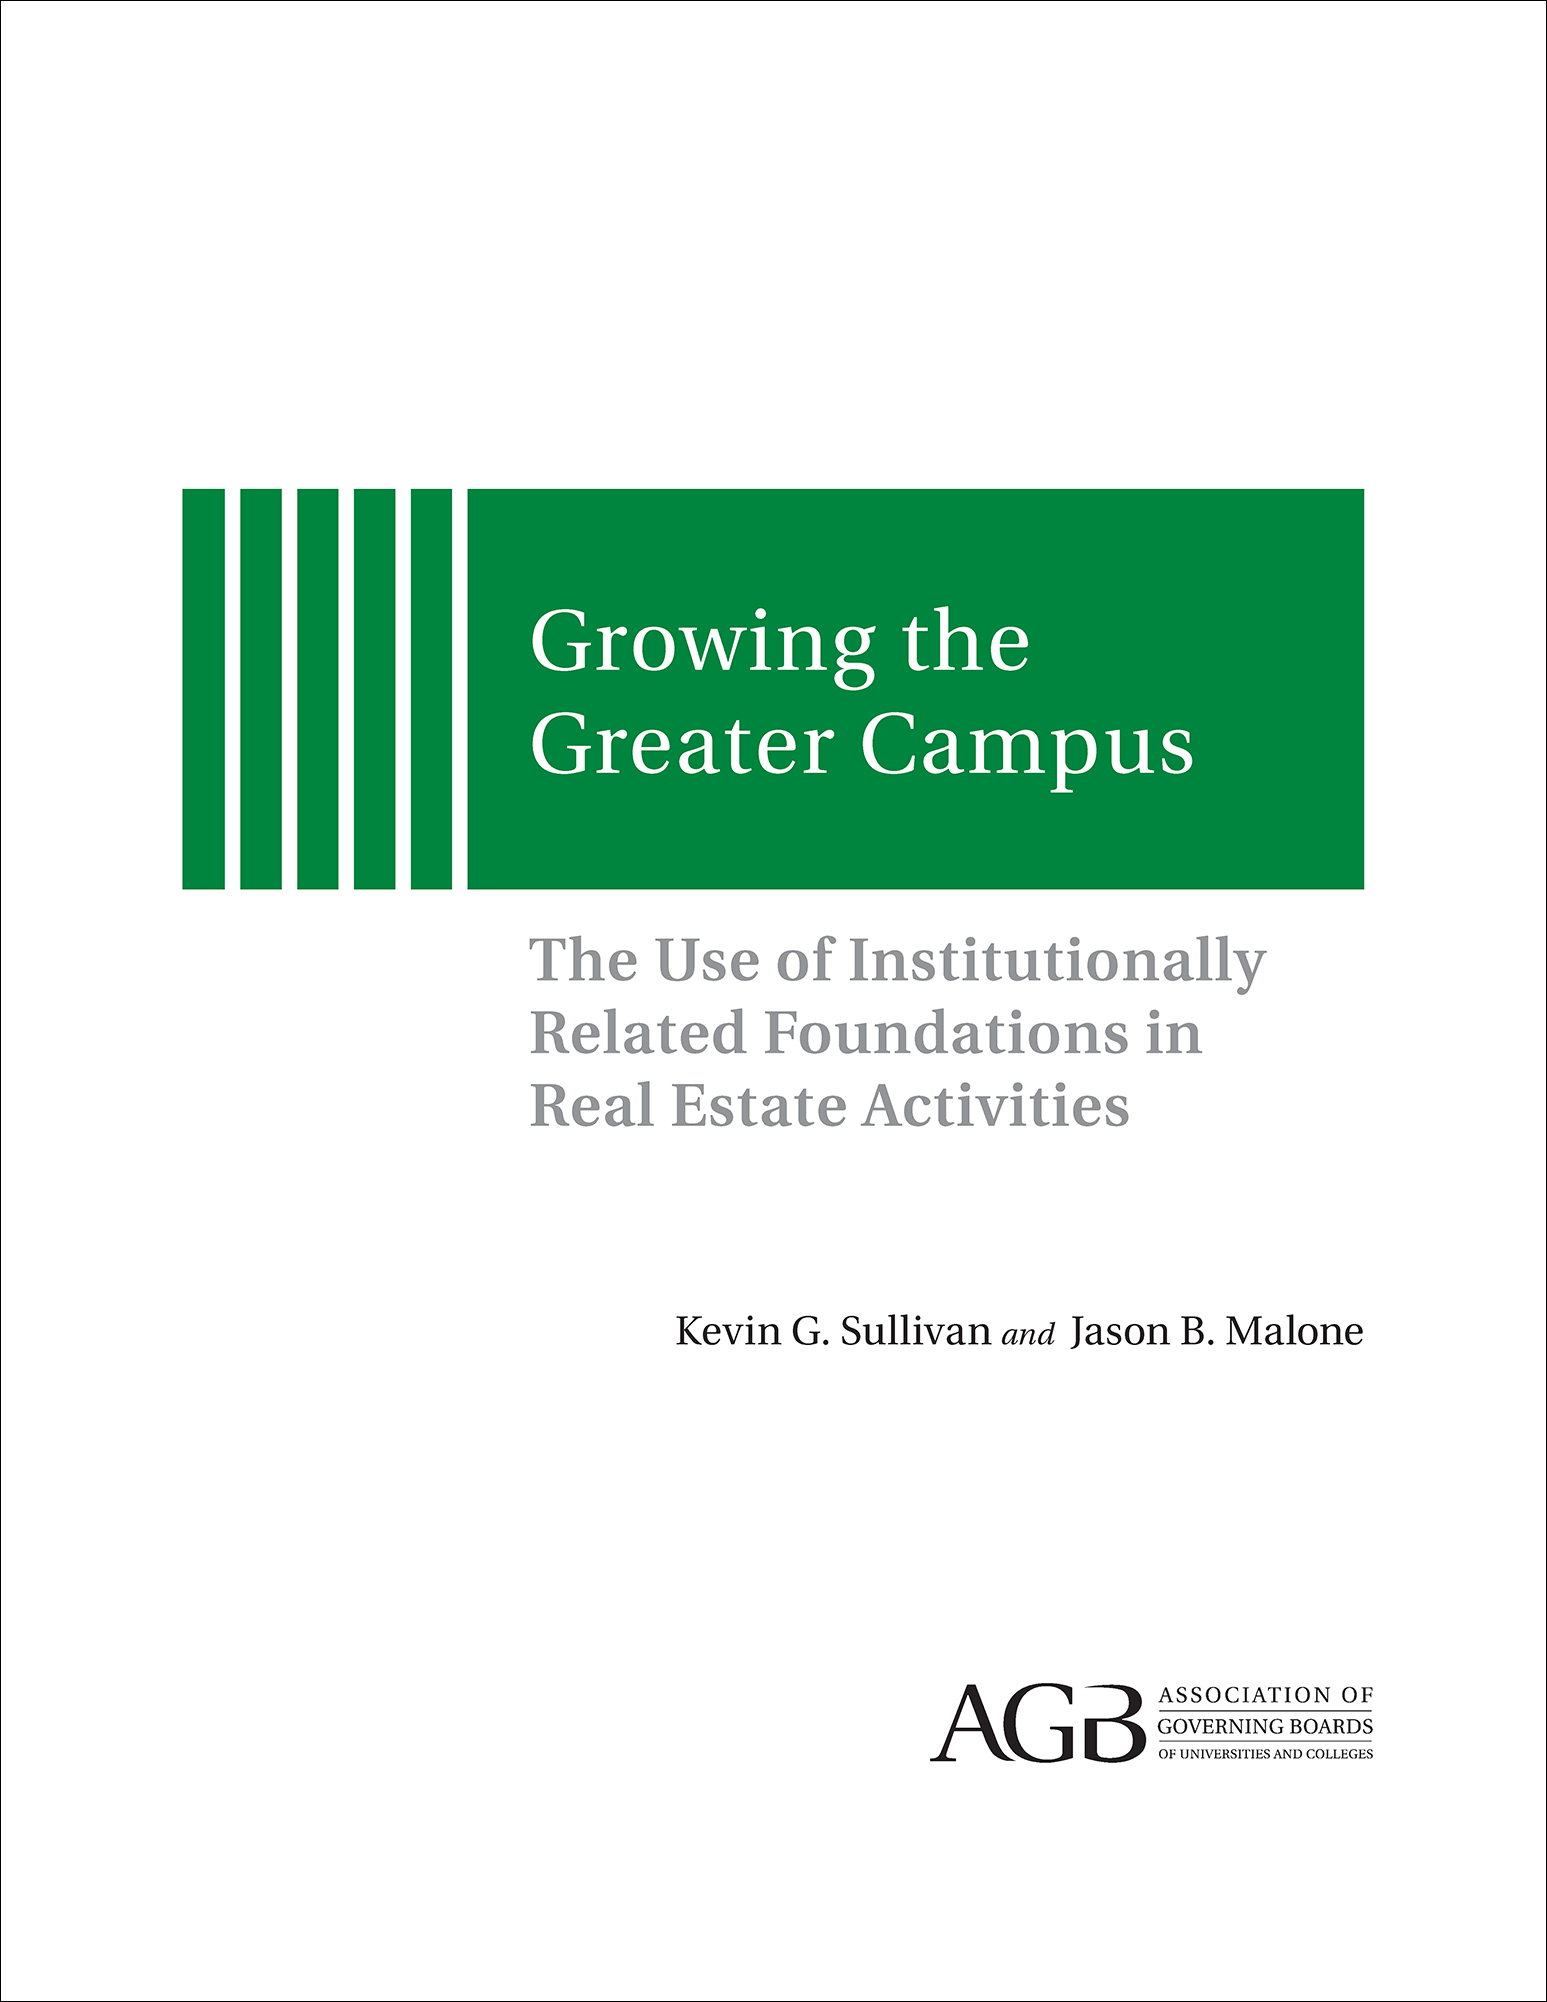 Growing the Greater Campus: The Use of Institutionally Related Foundations in Real Estate Activities